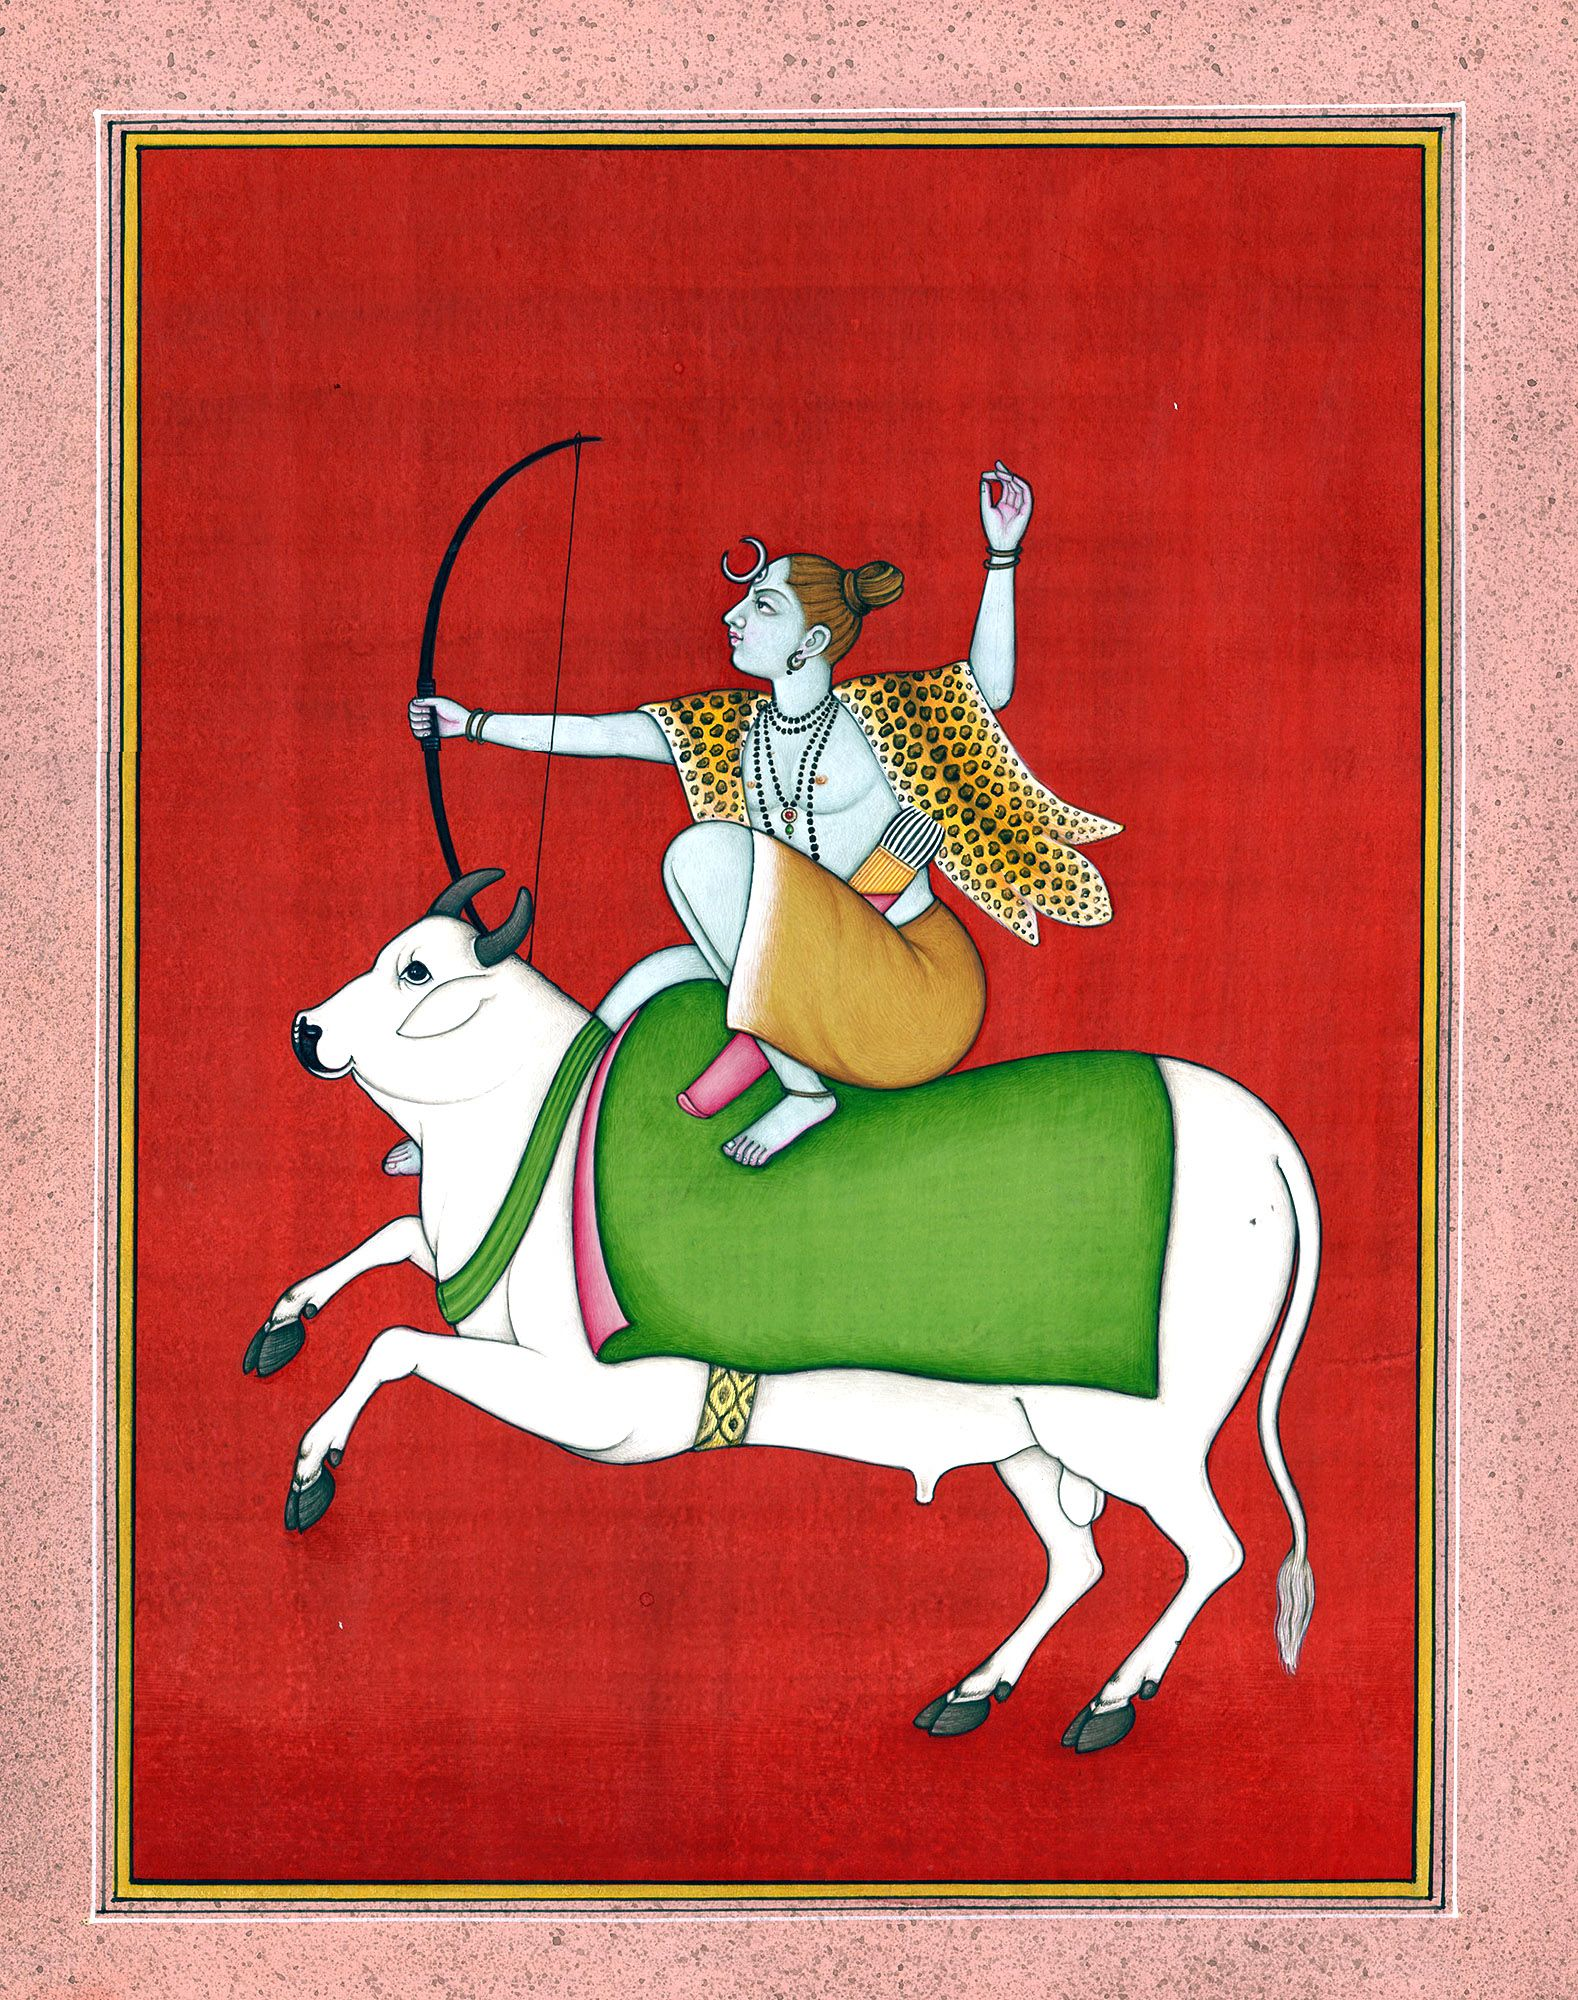 A Unique Painting Depicting Lord Shiva as an Archer Seated Astride Nandi